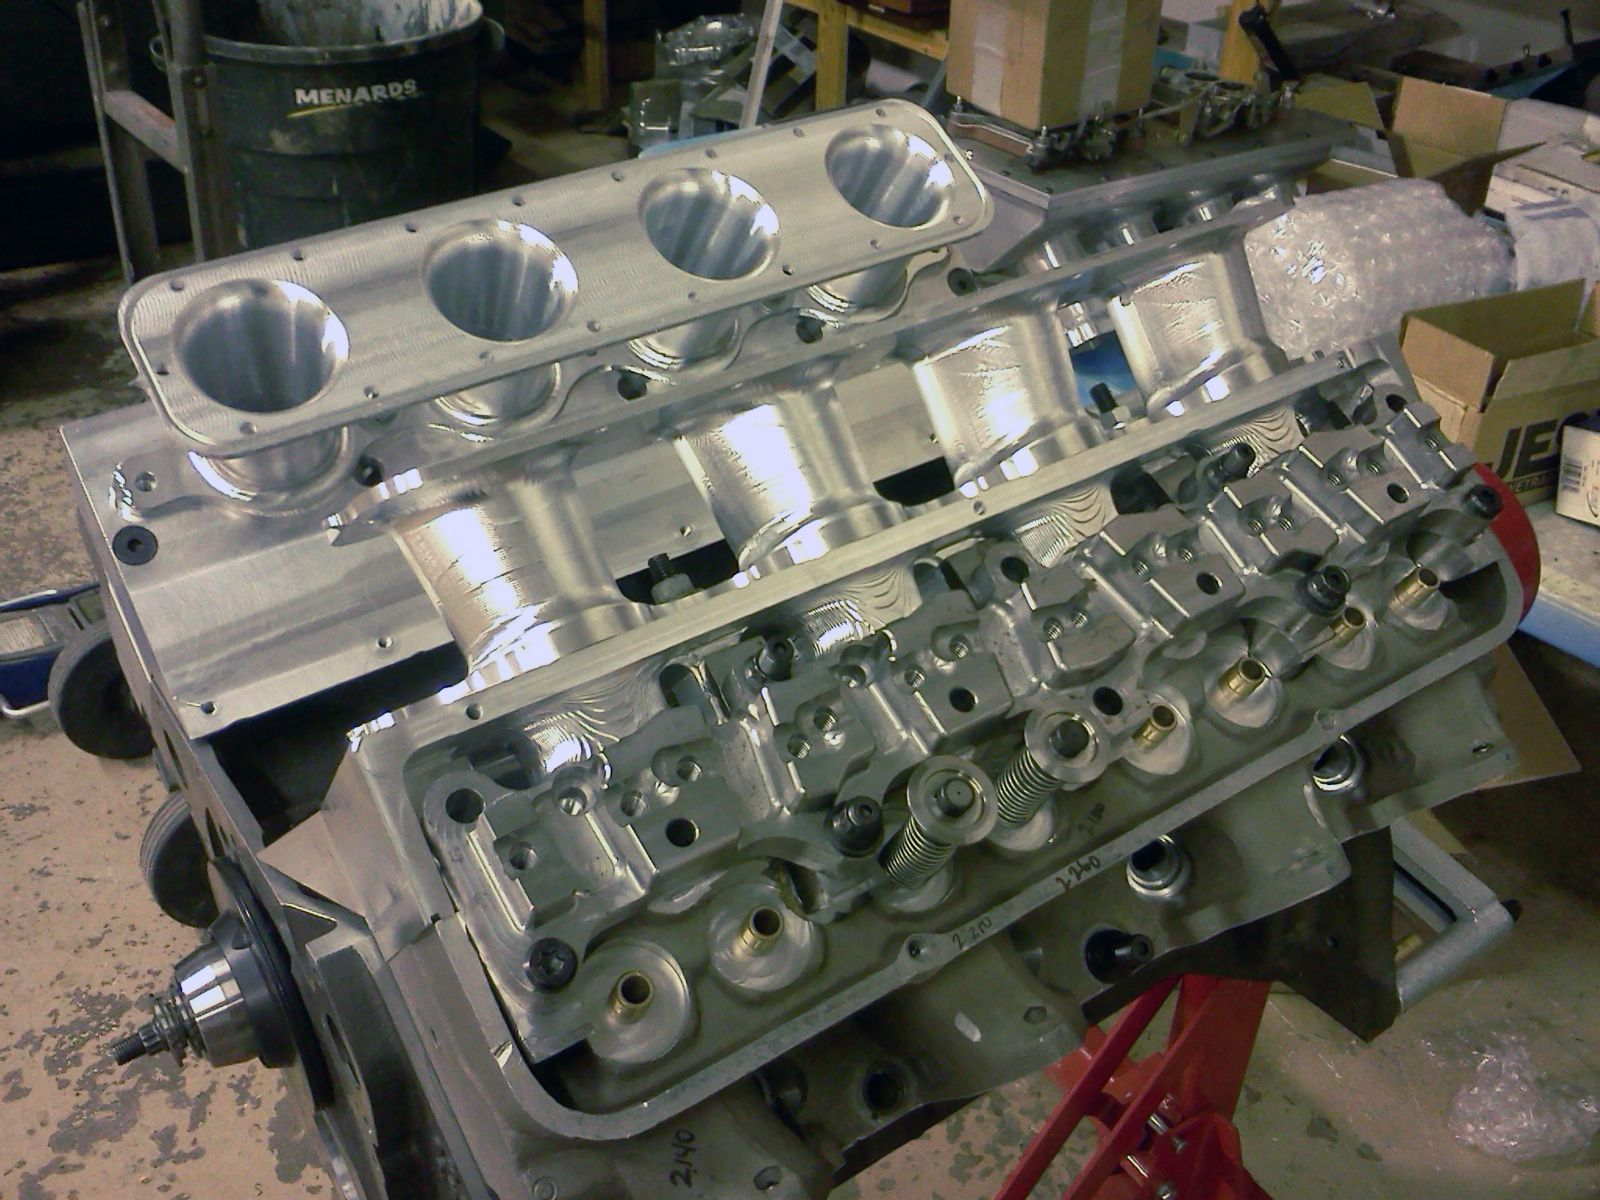 This Is A Custom Designed Ford 427 Drag Racing Engine I Machined